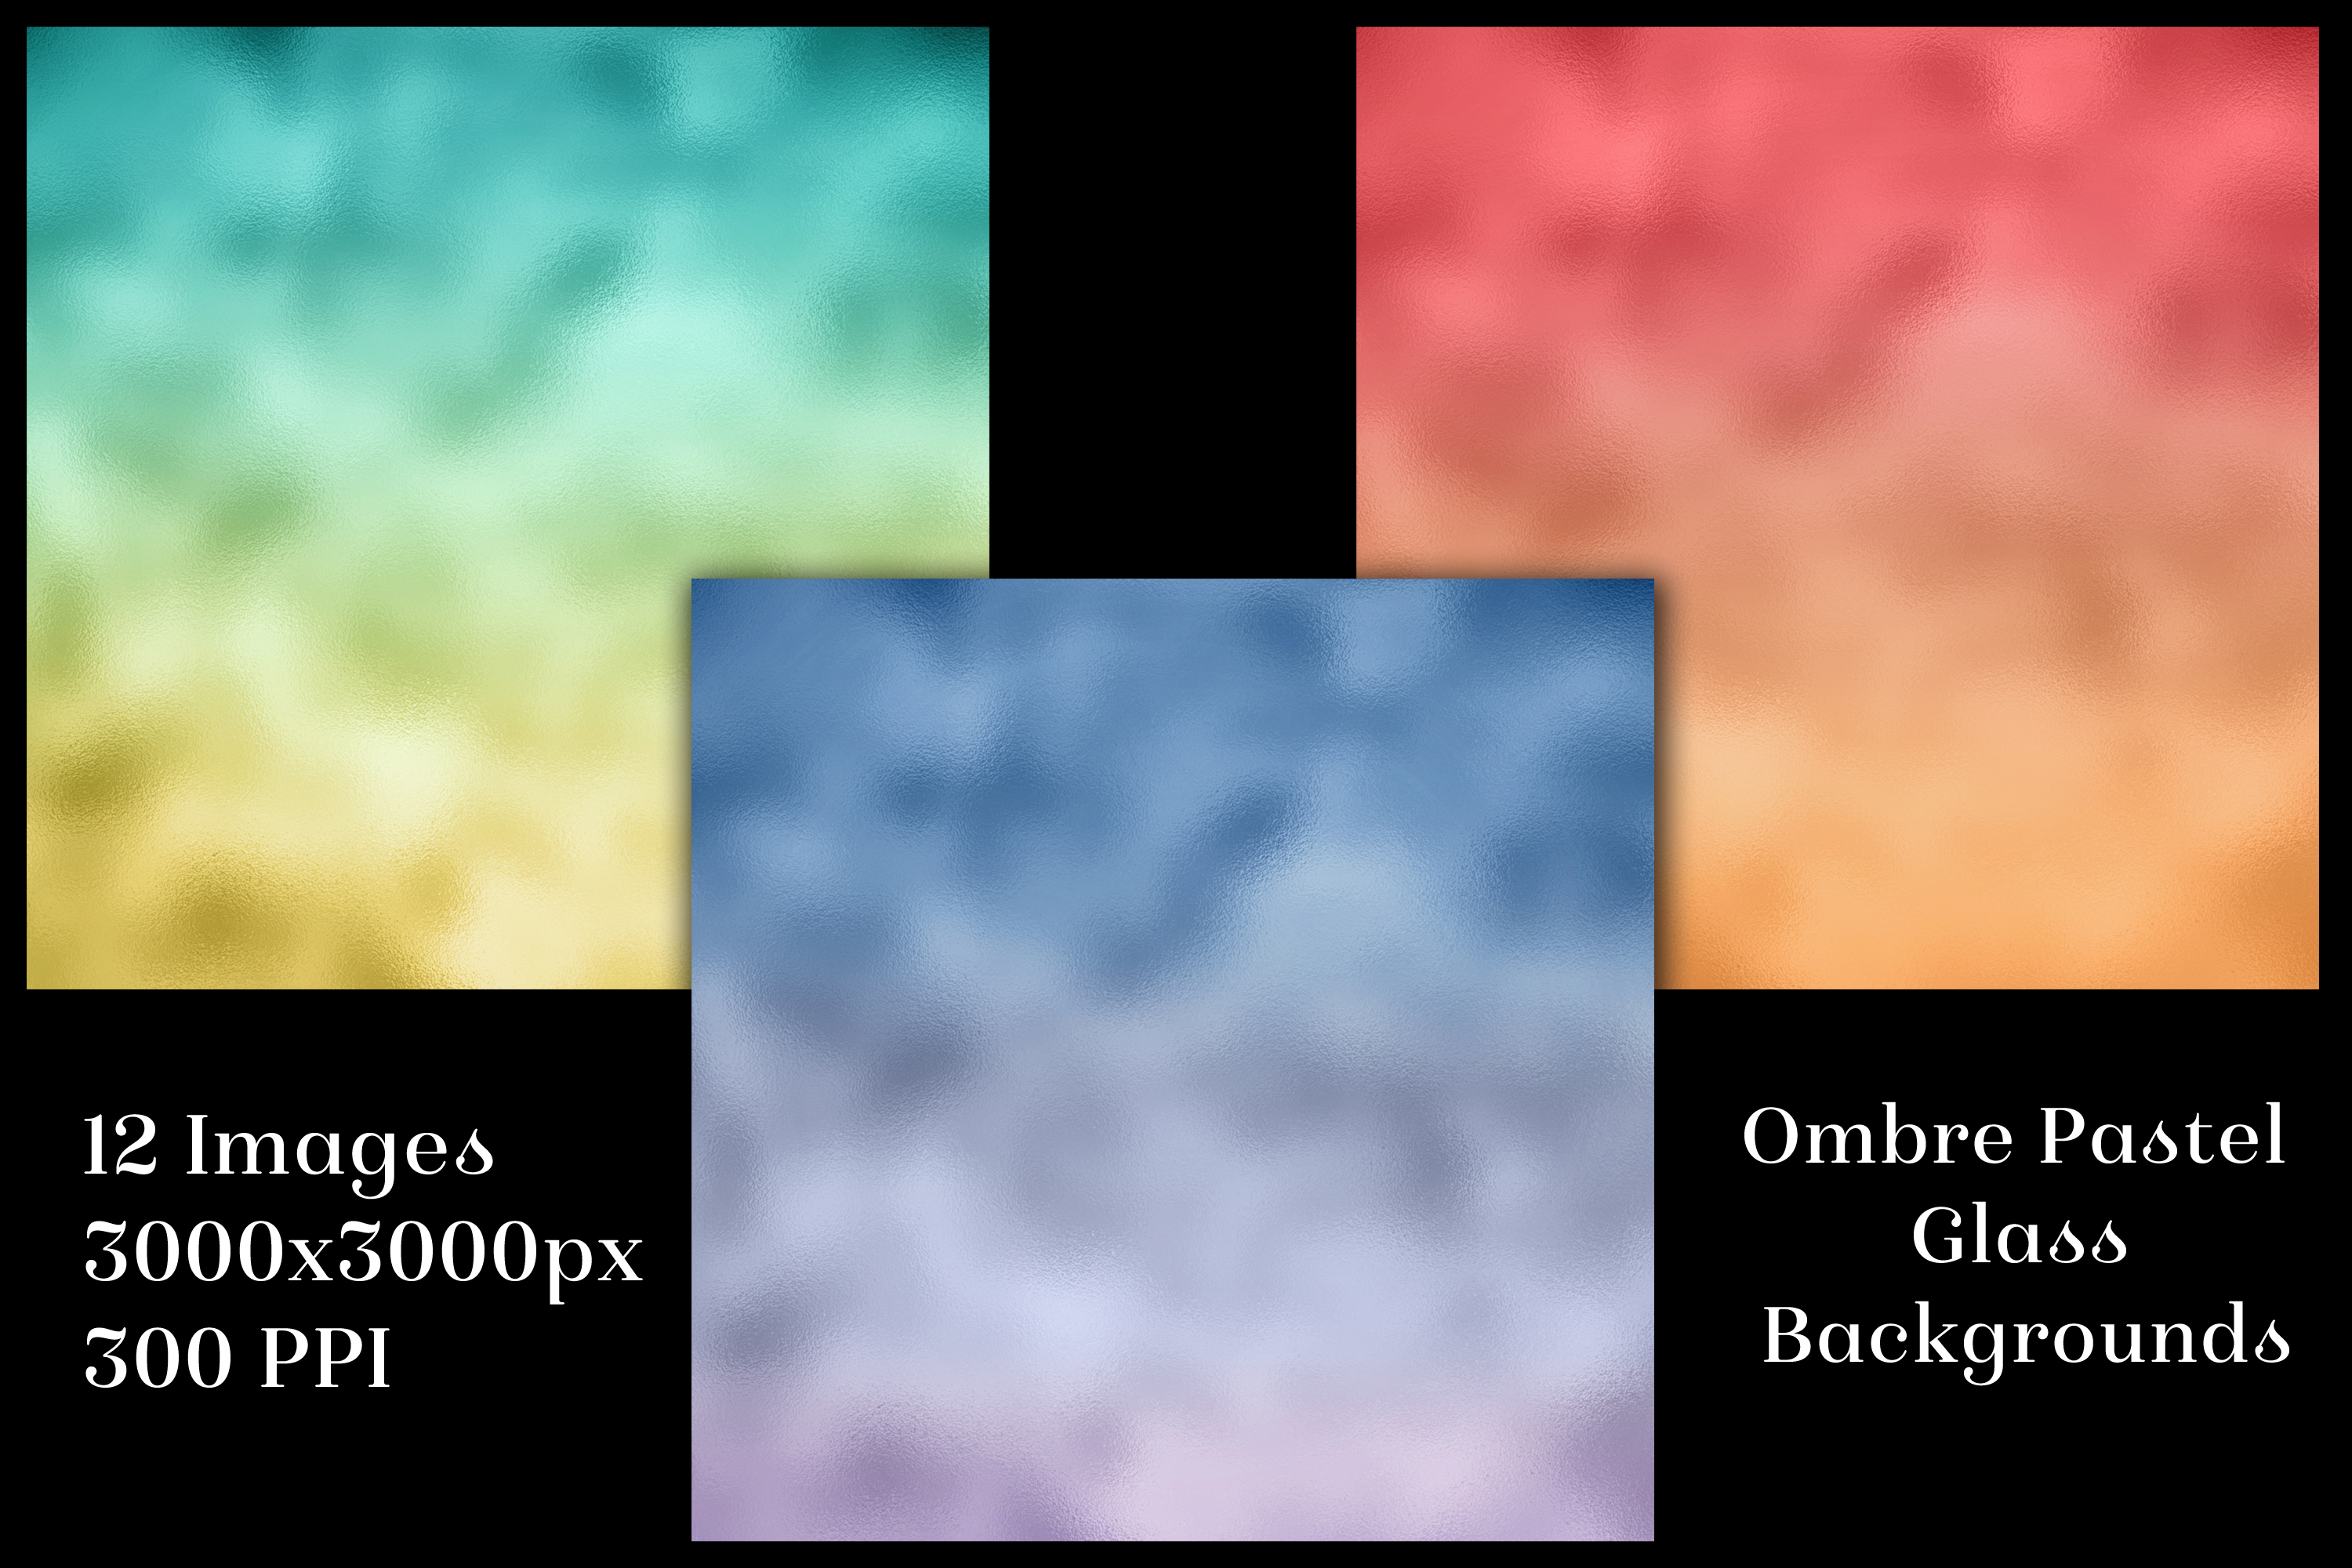 Ombre Pastel Glass Backgrounds - 12 Image Textures Set example image 2